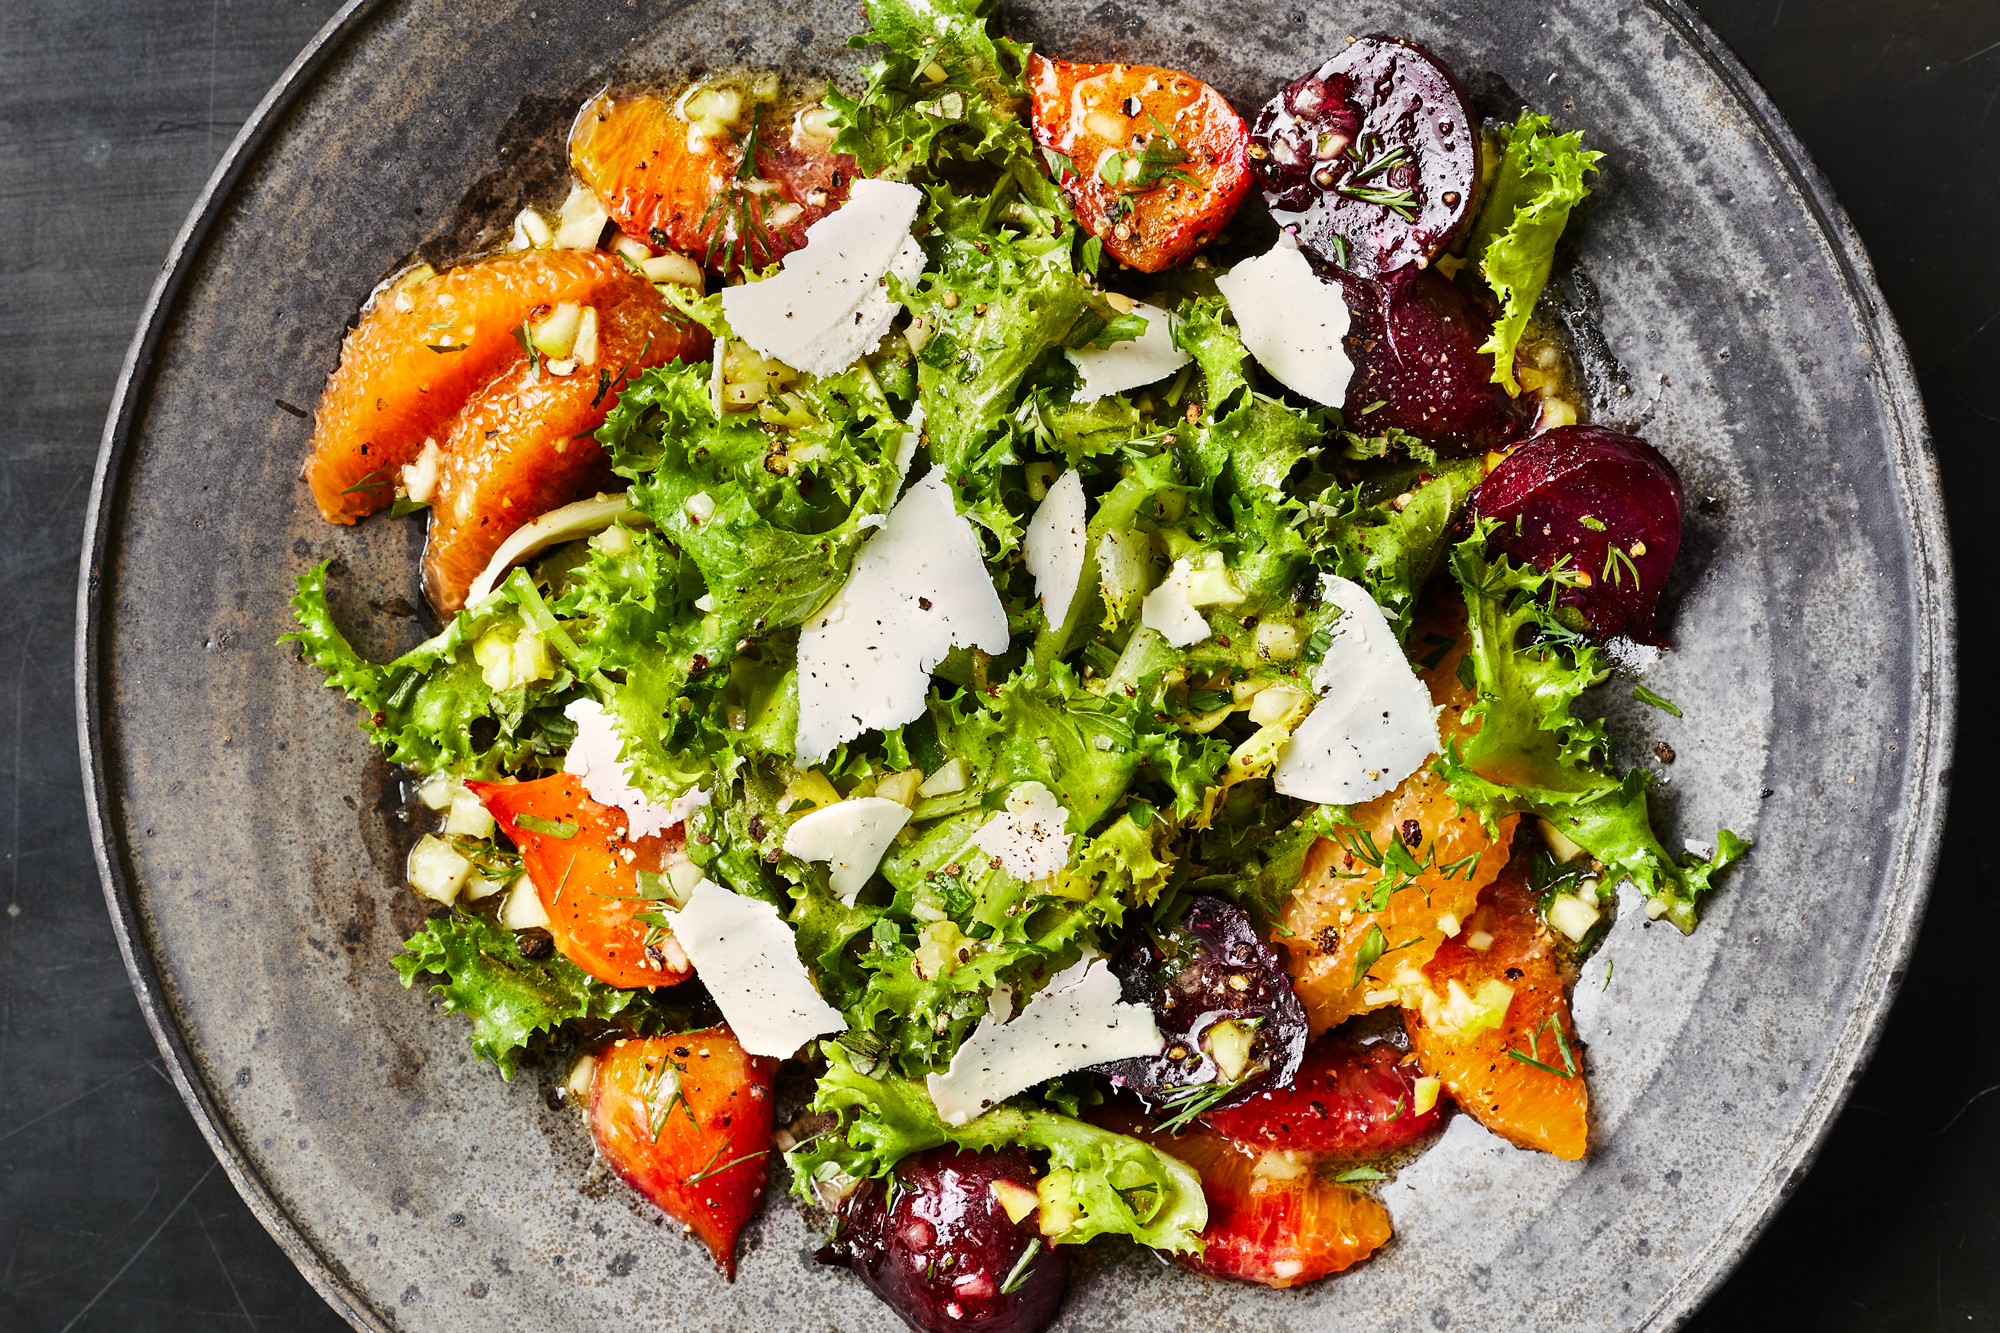 Puntarelle-Citrus Salad with Roasted Beets